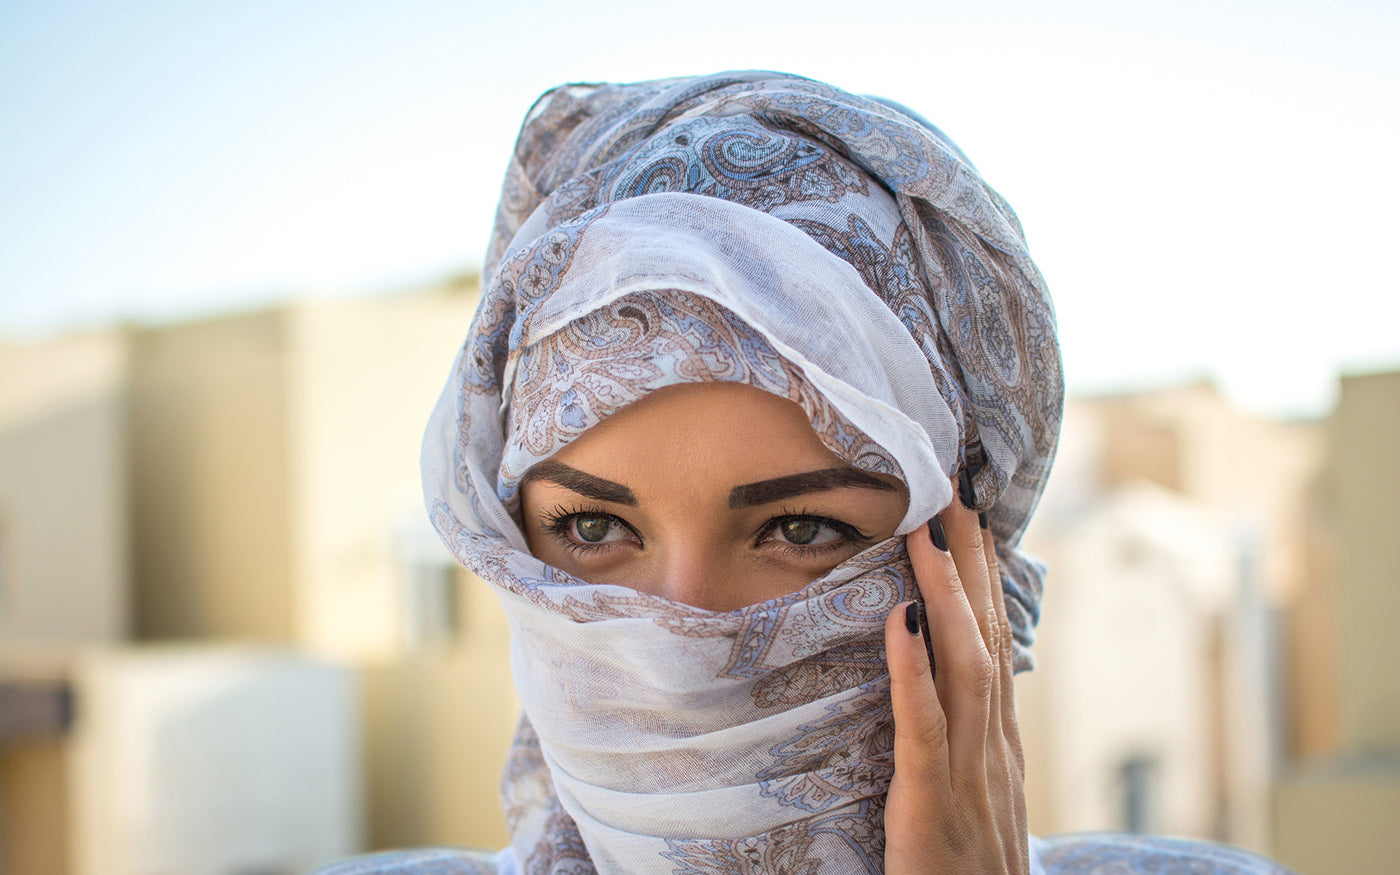 Arabic face covering